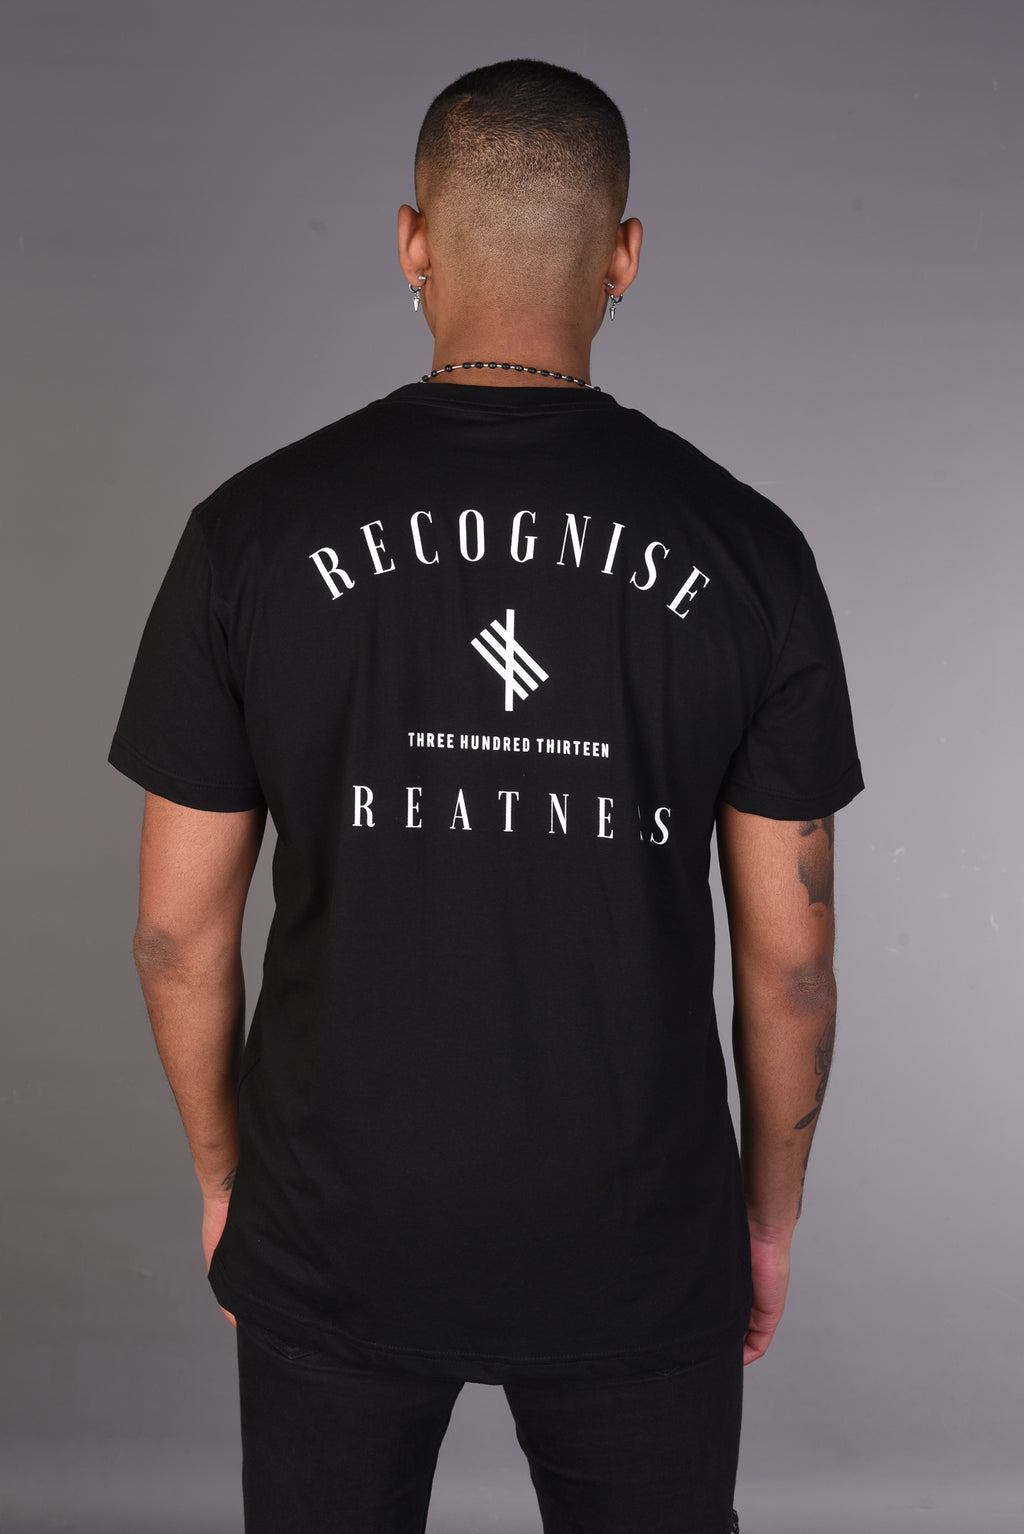 313 Recognise Greatness T-Shirt - Black